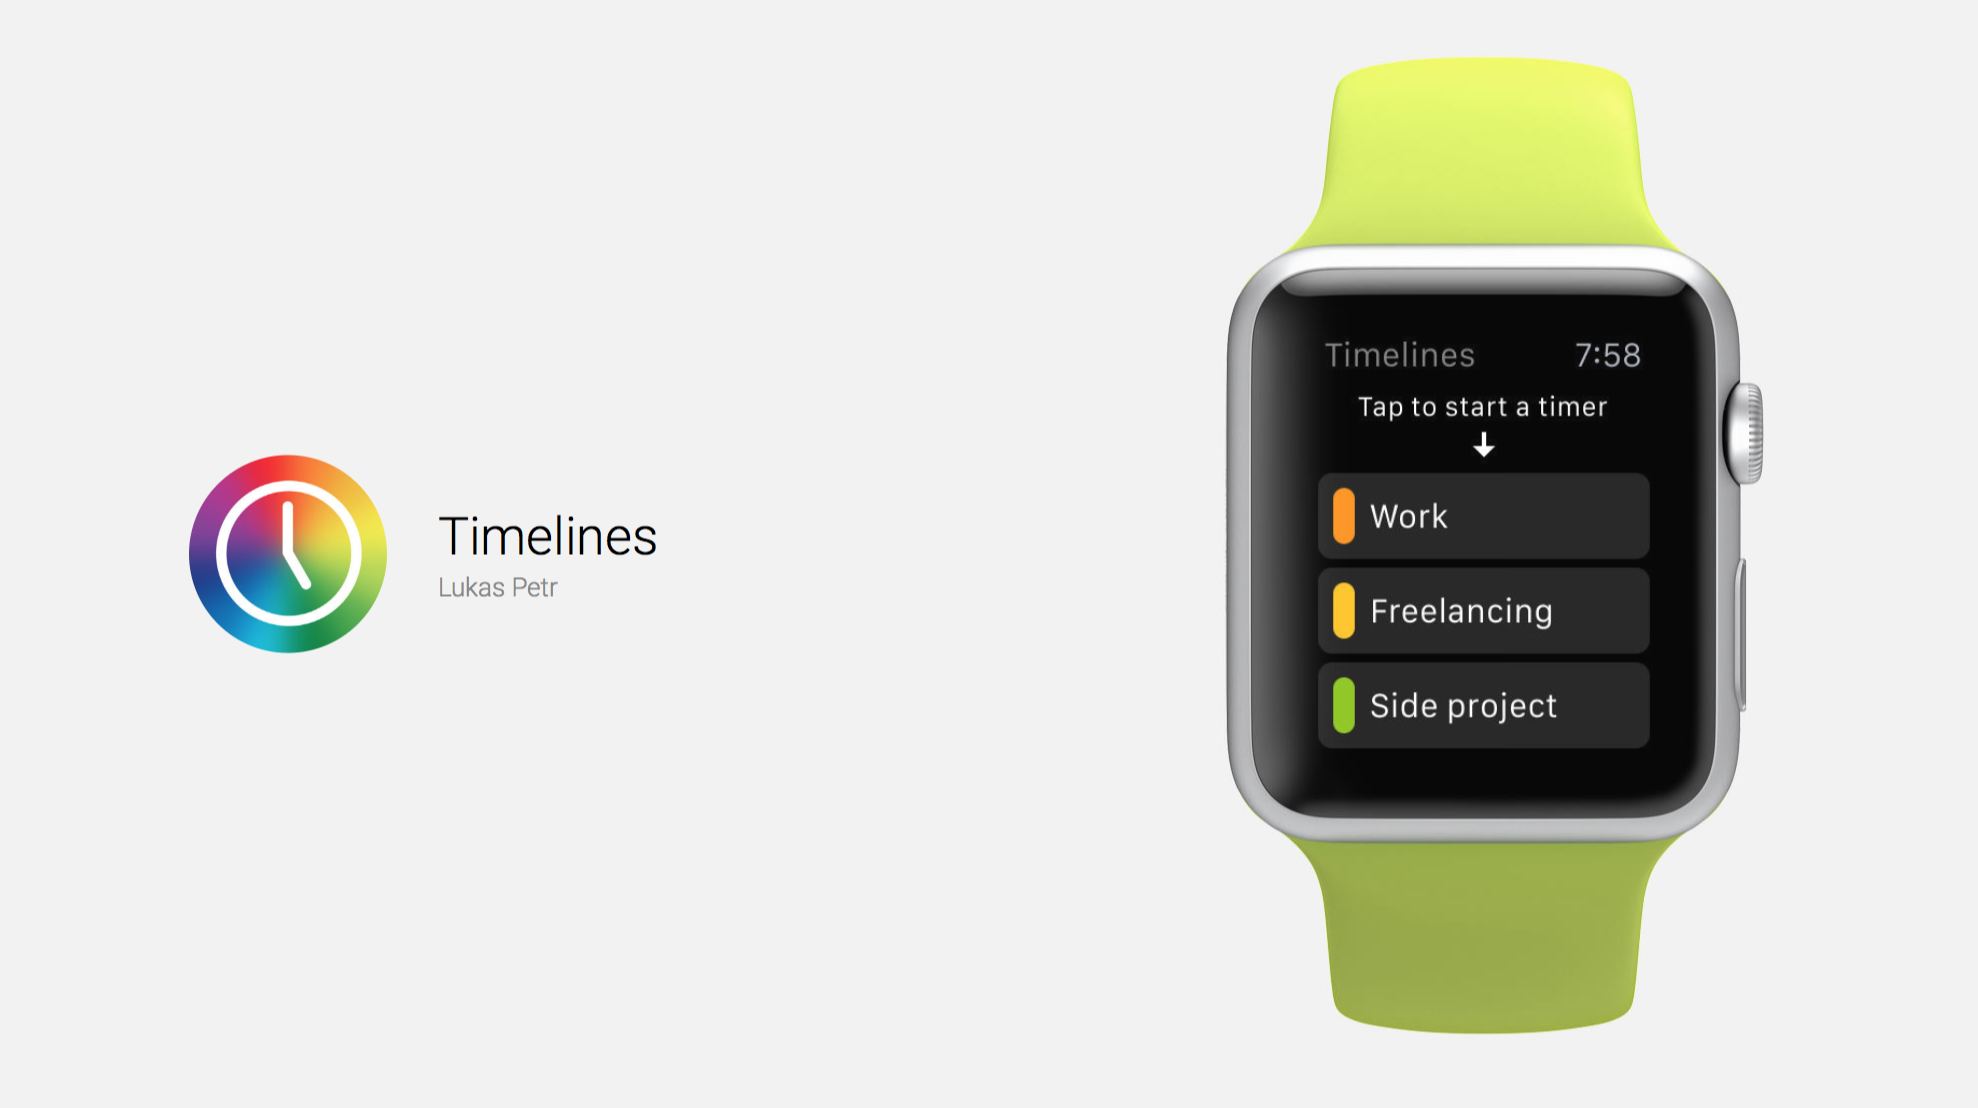 Track Your Time With Timelines on Your Apple Watch